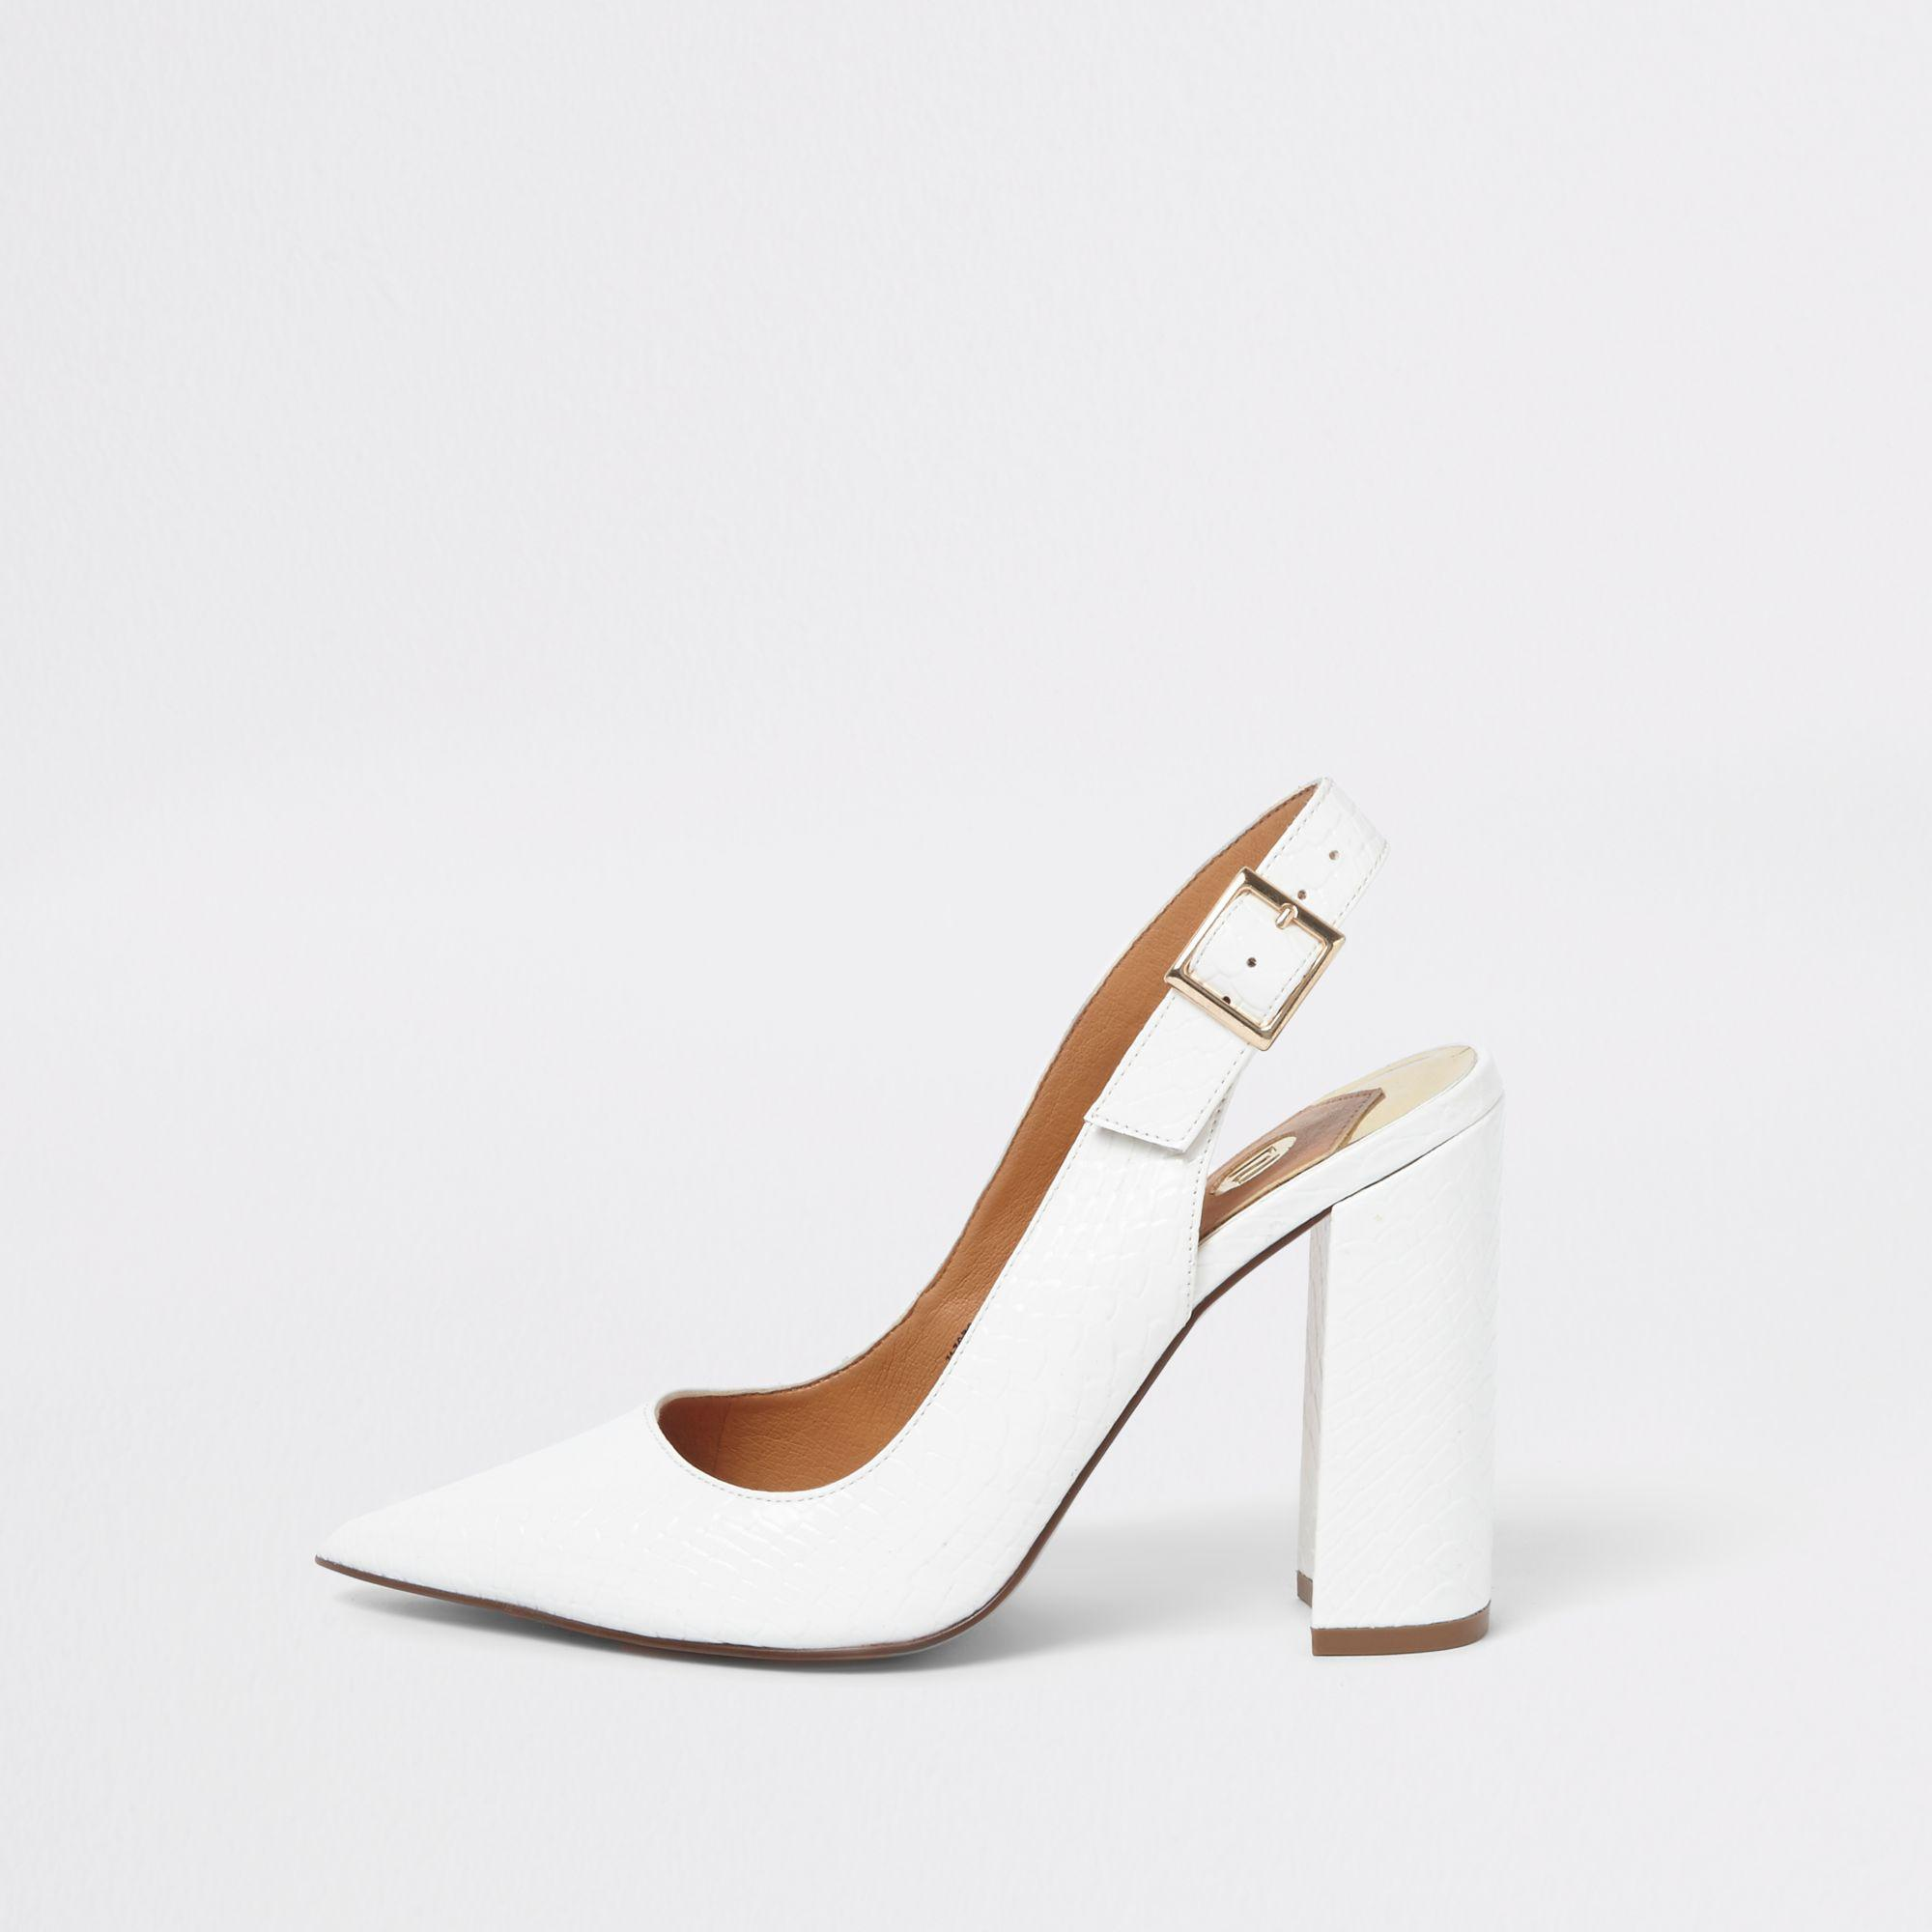 c6d30d3bb71 Lyst - River Island Croc Block Heel Sling Back Court Shoes in White